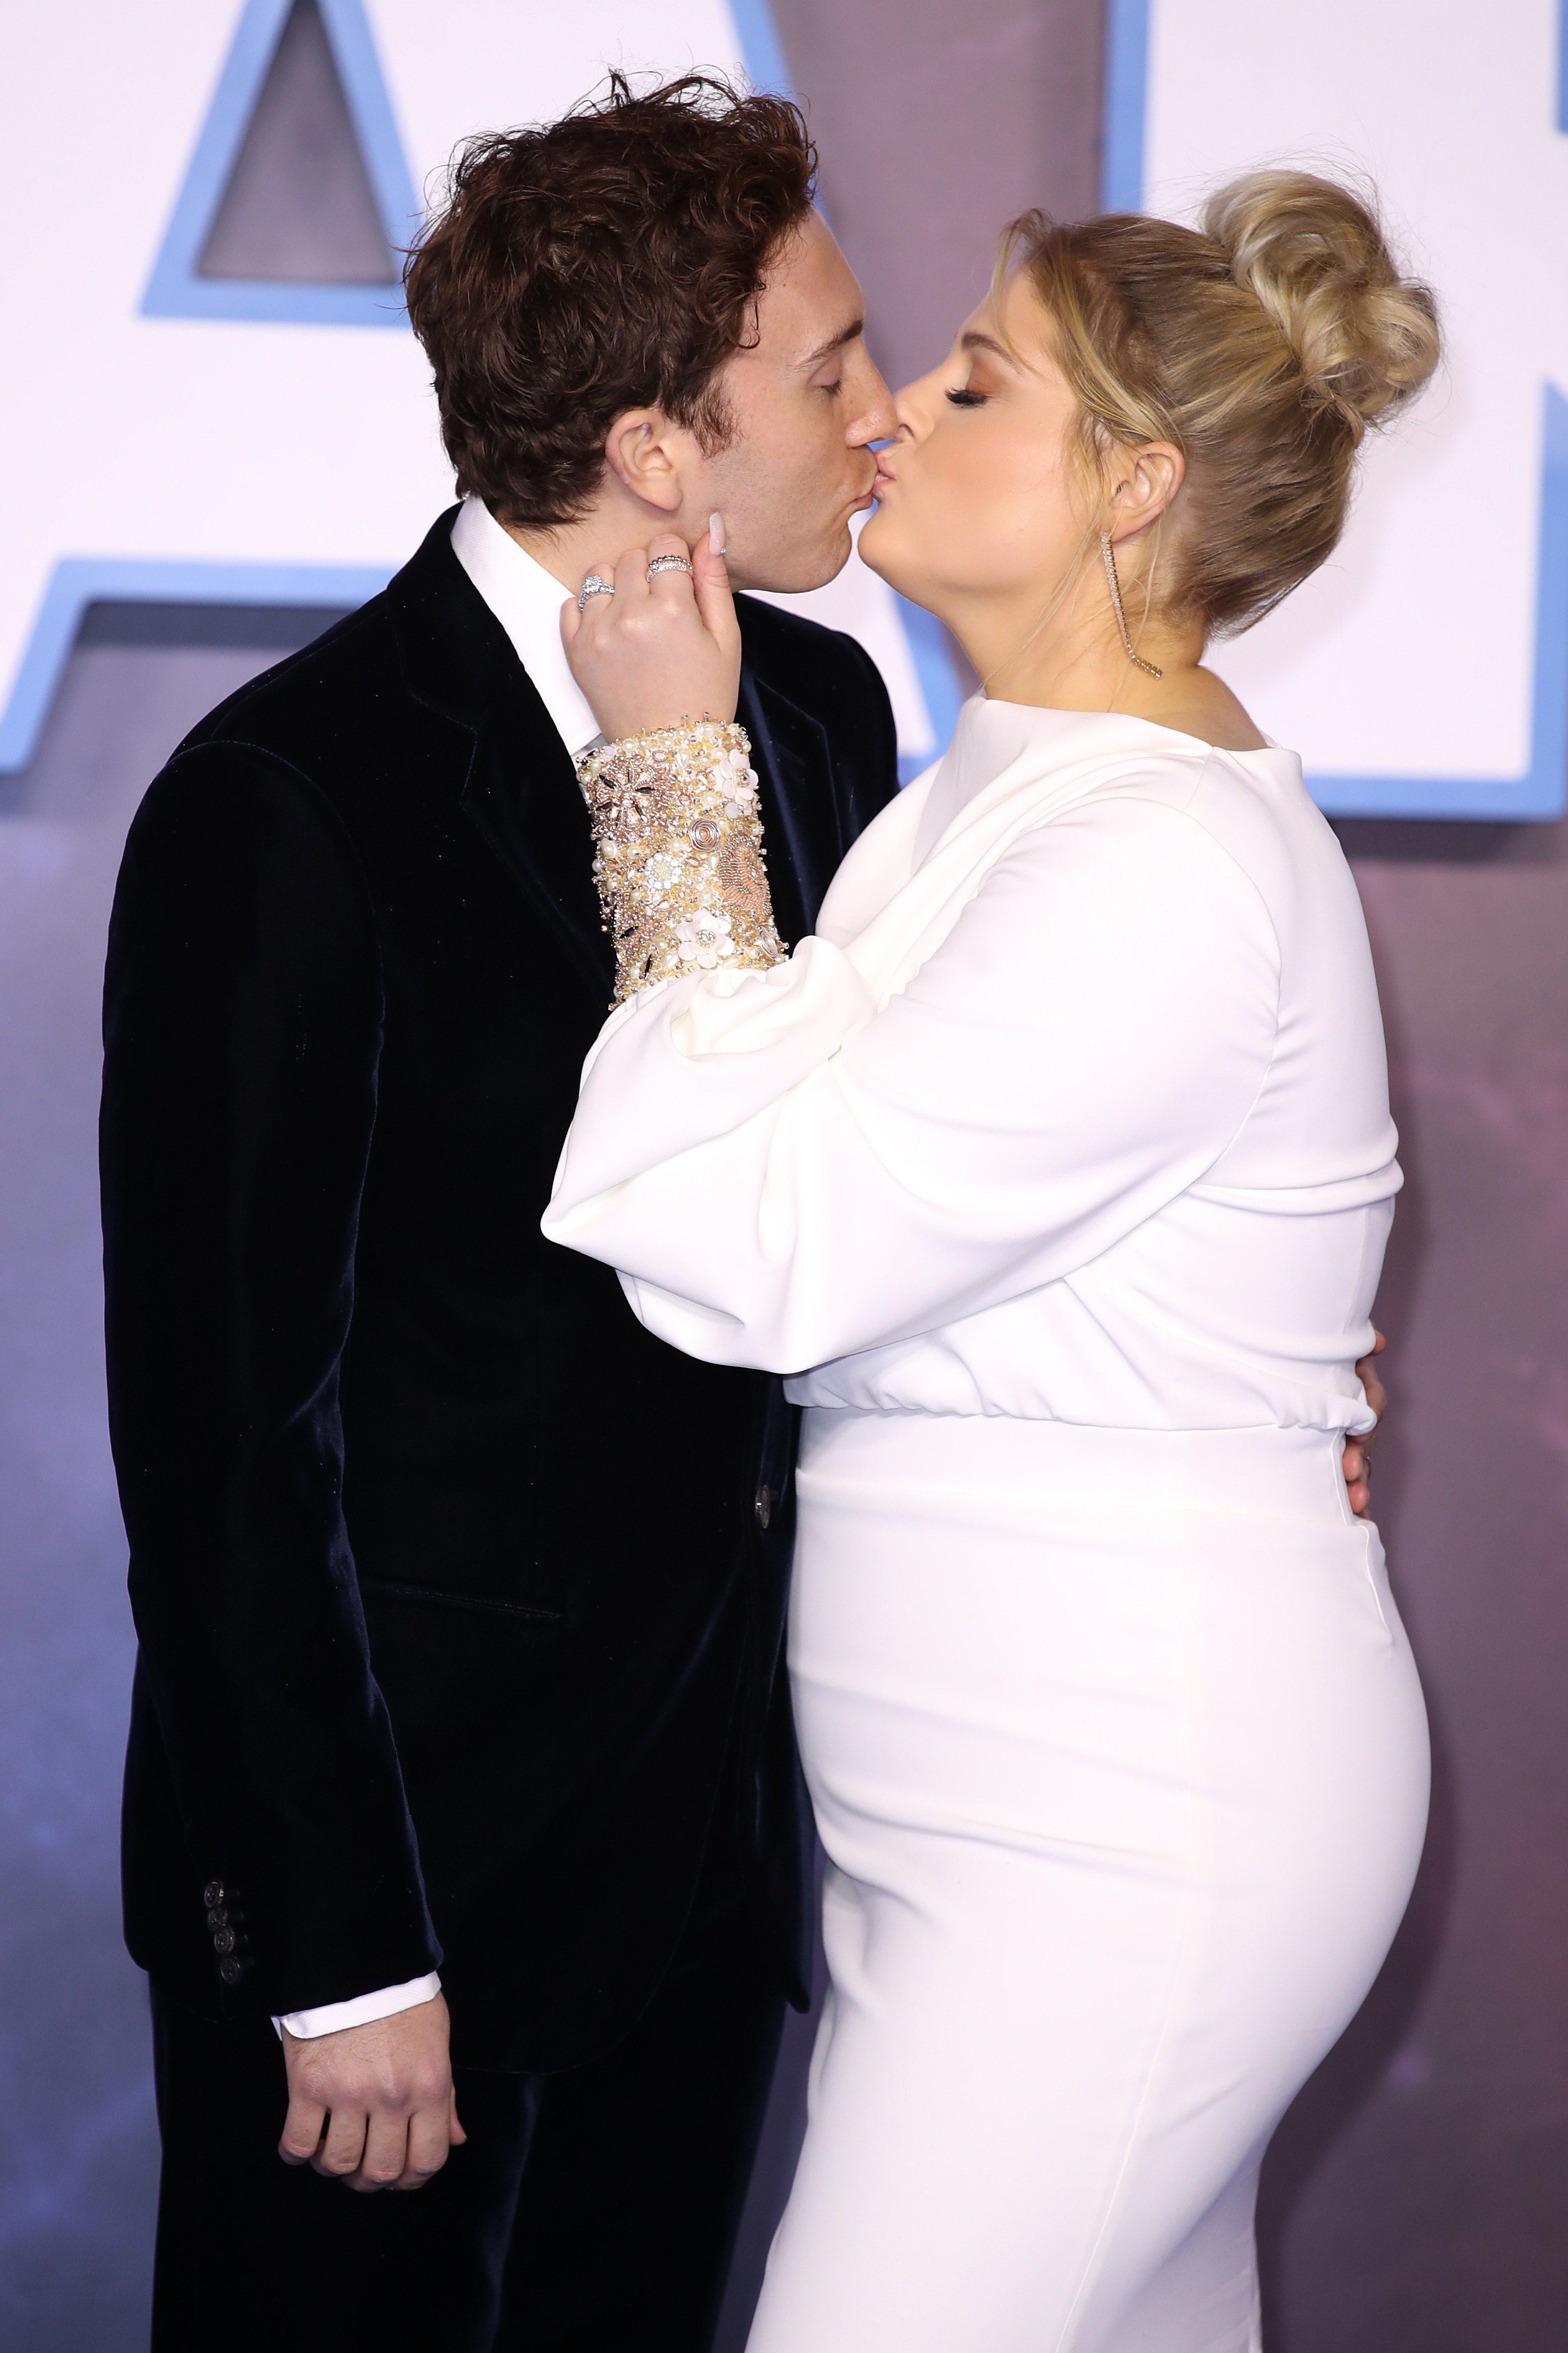 The couple kissing on the red carpet